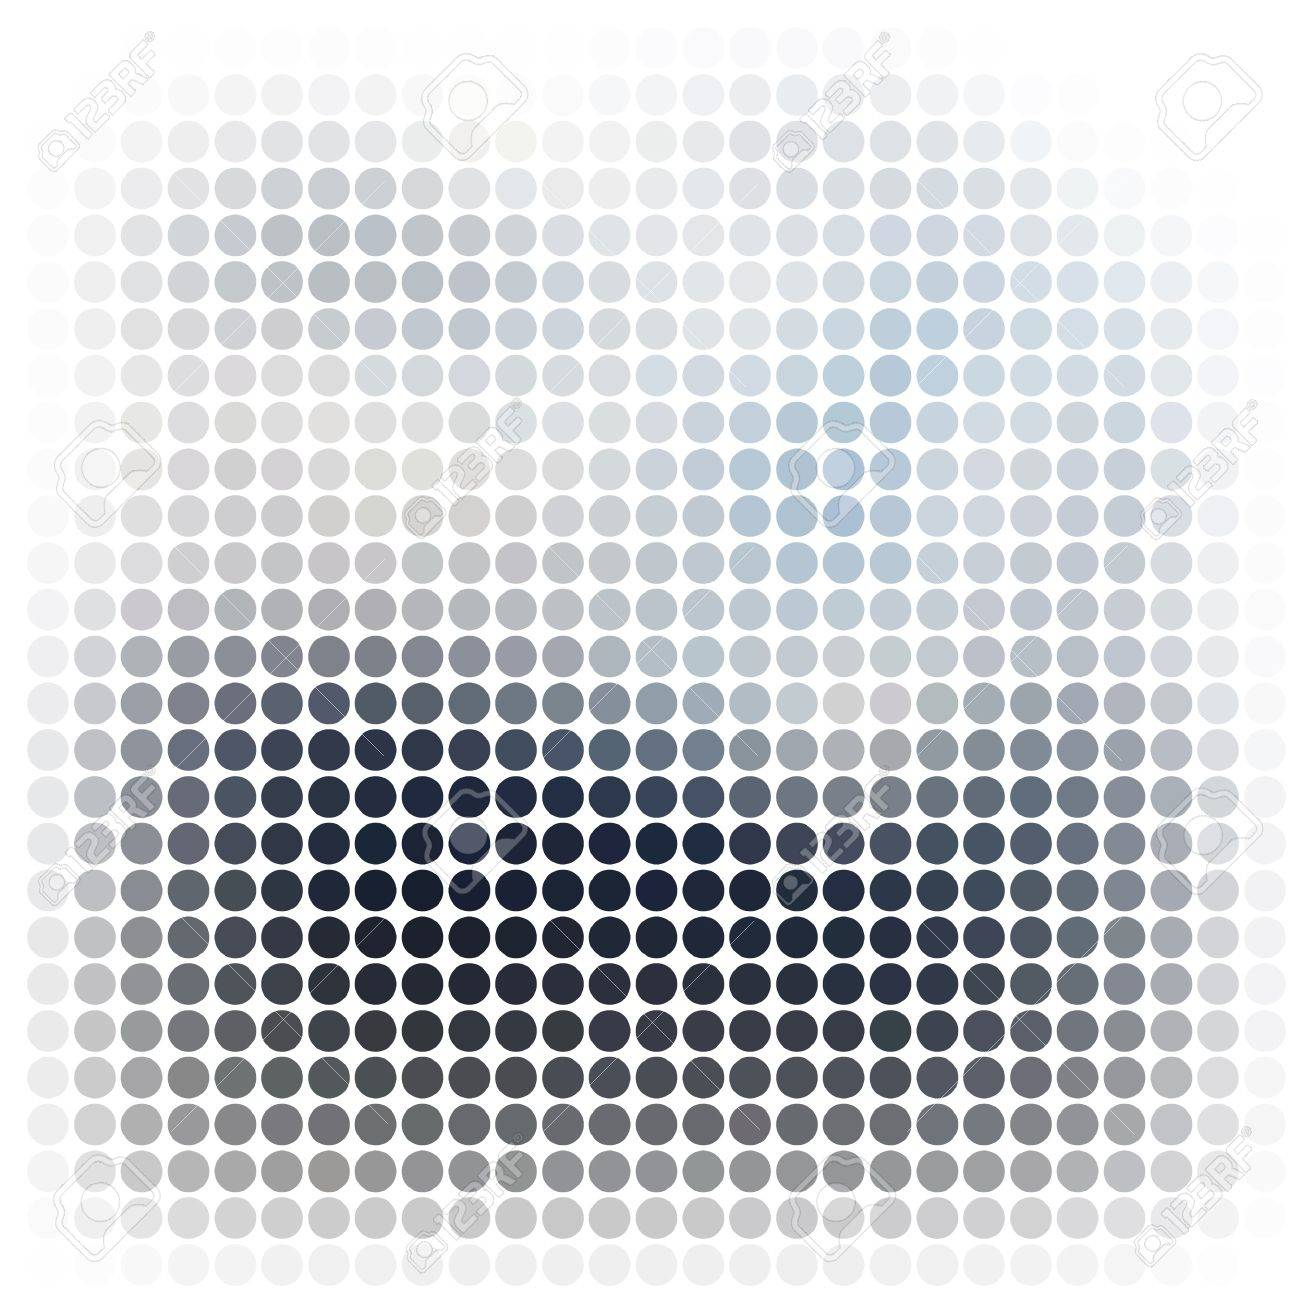 Dots abstract vector background Stock Photo - 10385971